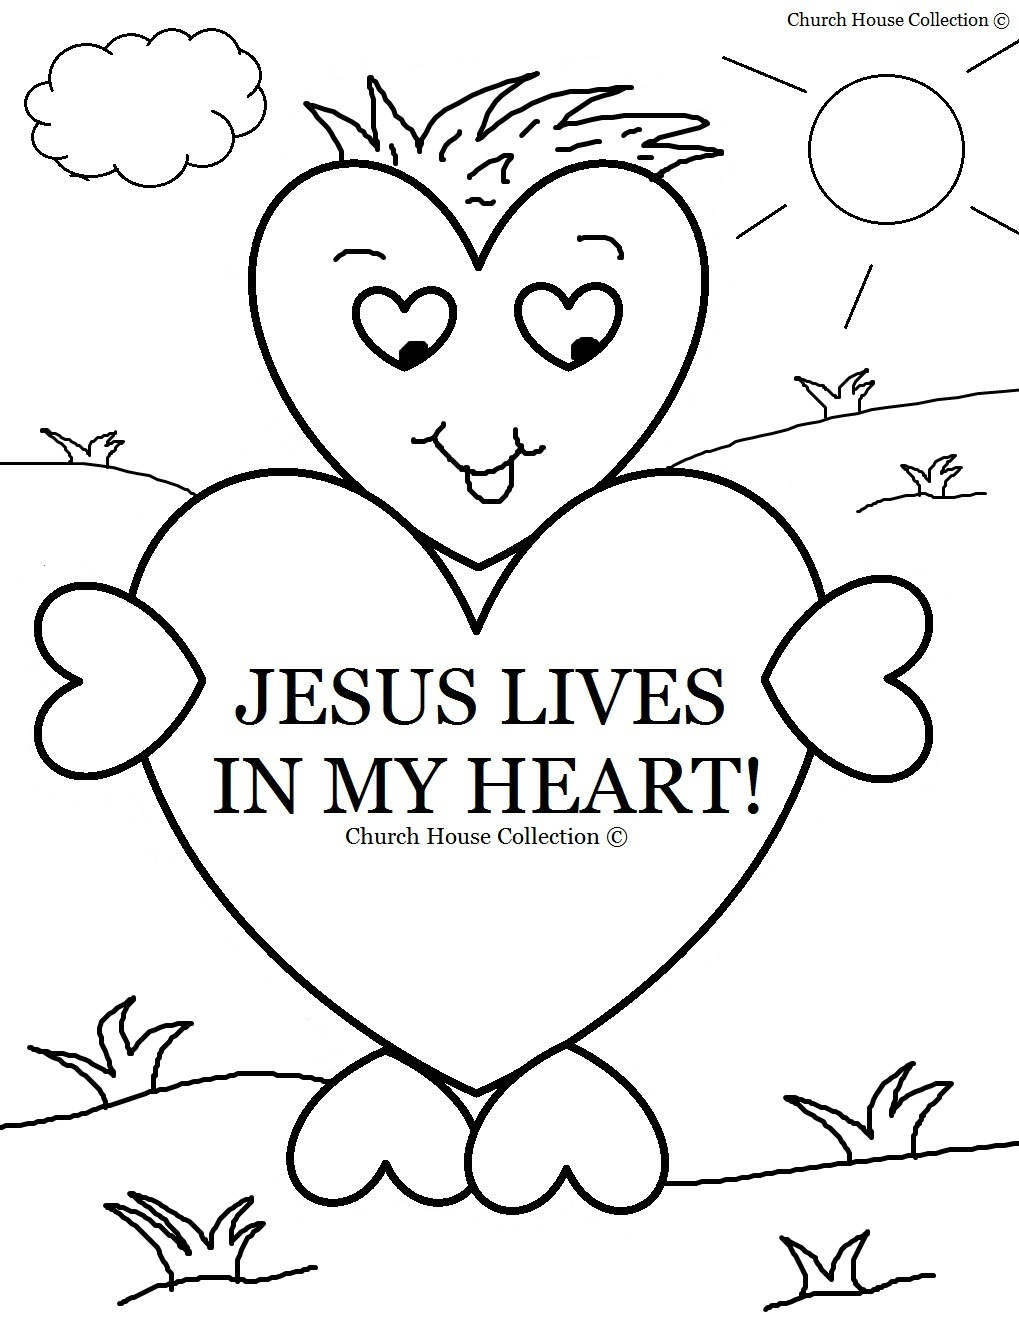 1019x1319 Church House Collection Blog Jesus Lives In My Heart Coloring